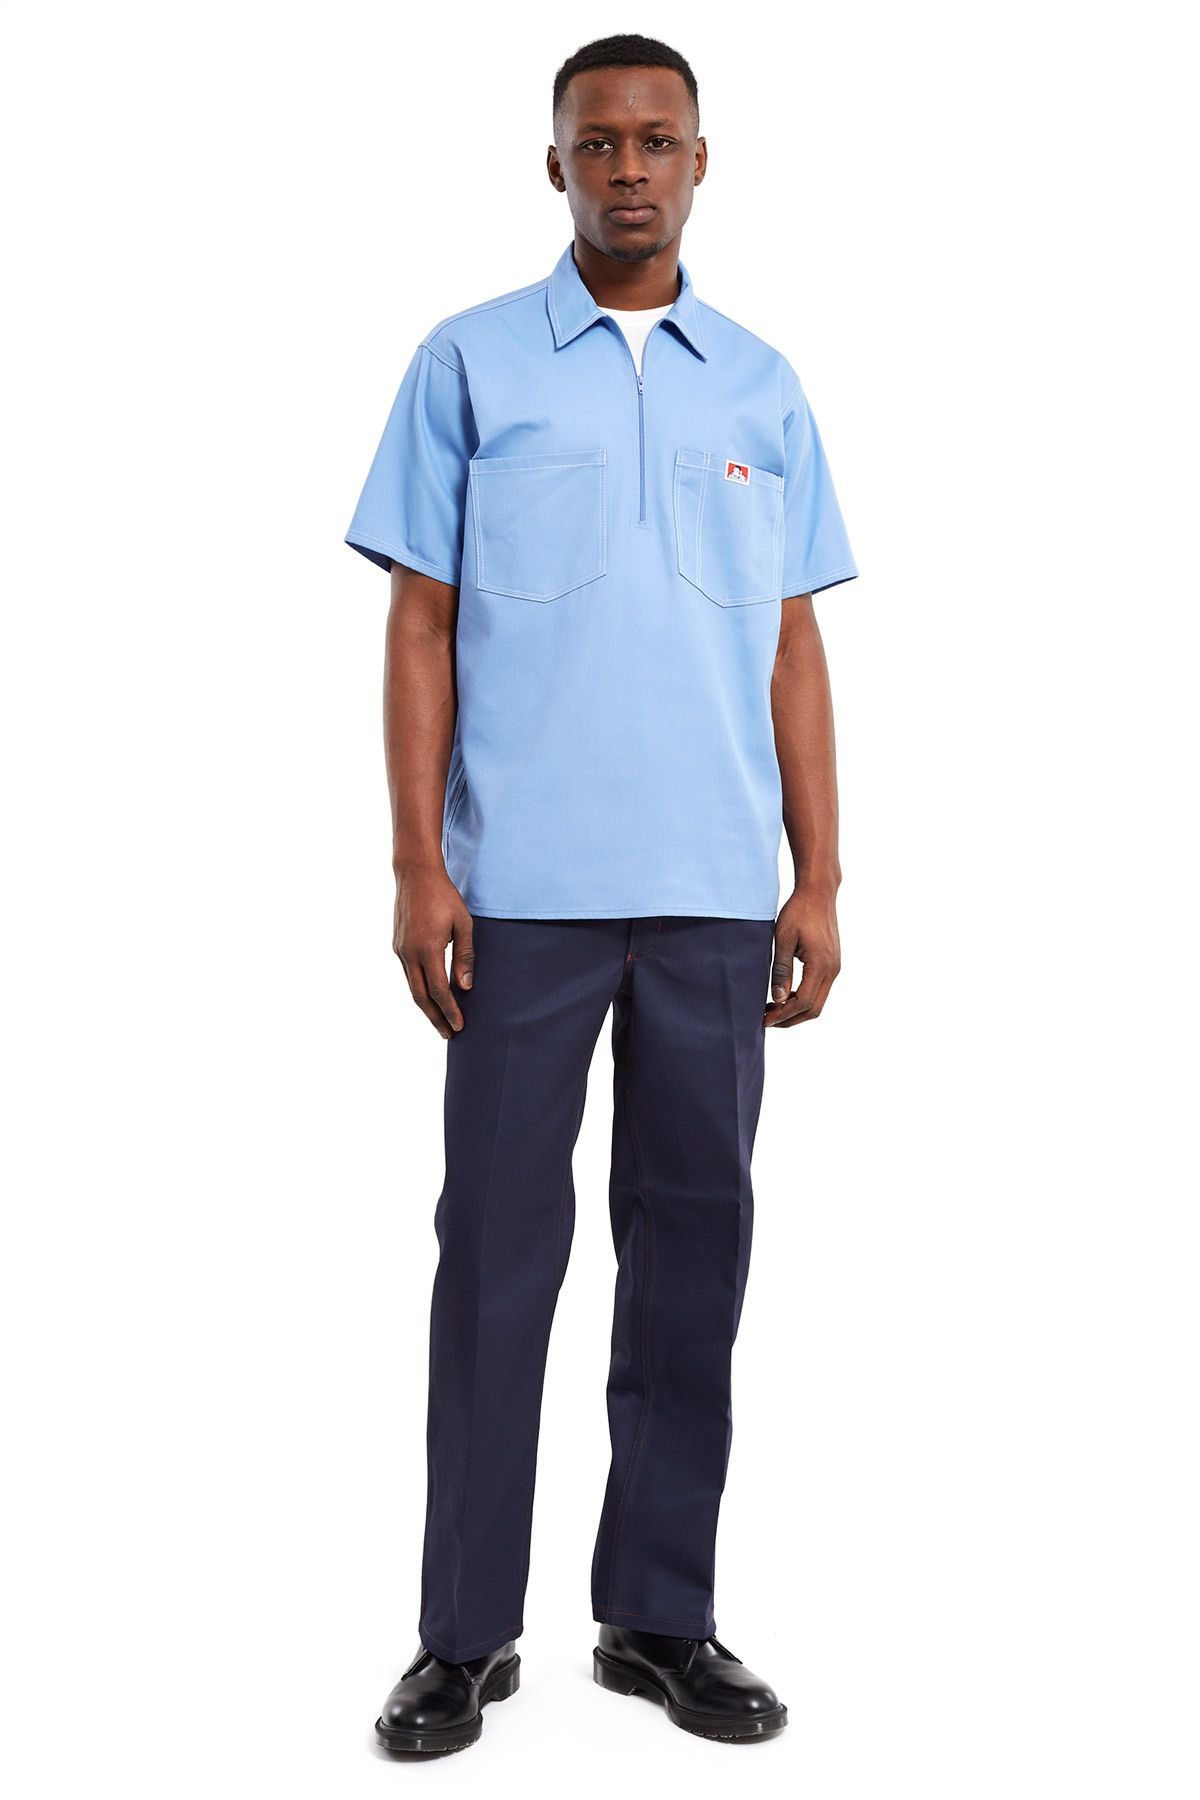 caabdb44bc44 ... Trim Fit Pants Ben Davis  original twill blend pant in deep navy is  updated with contrast red topstitching and contoured side pockets.